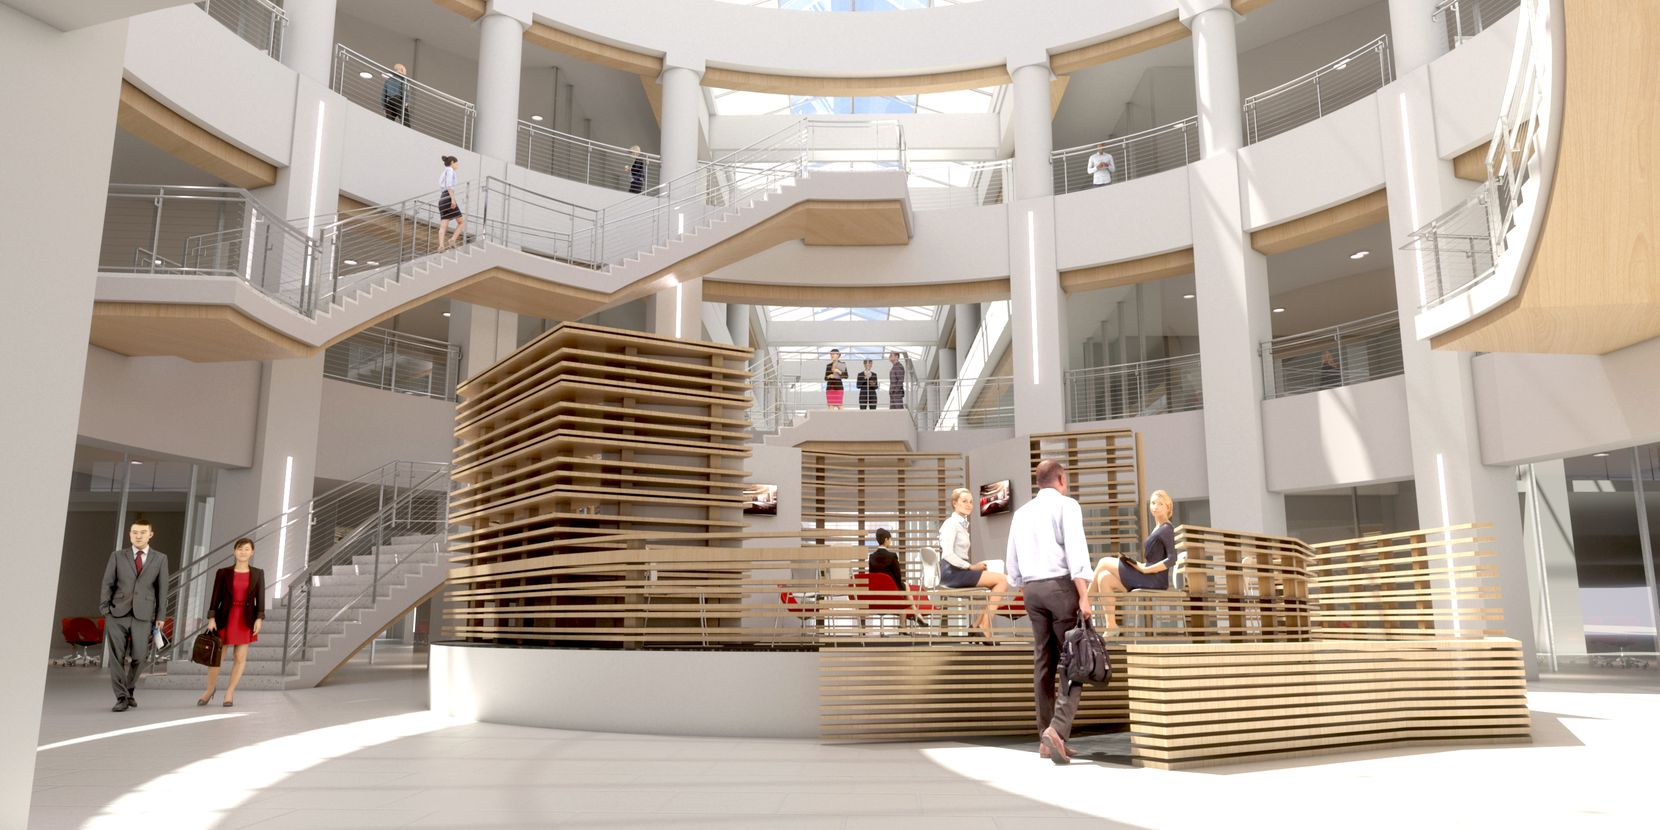 Redevelopment plans for J.C. Penney's corporate office in Plano show a total new look.